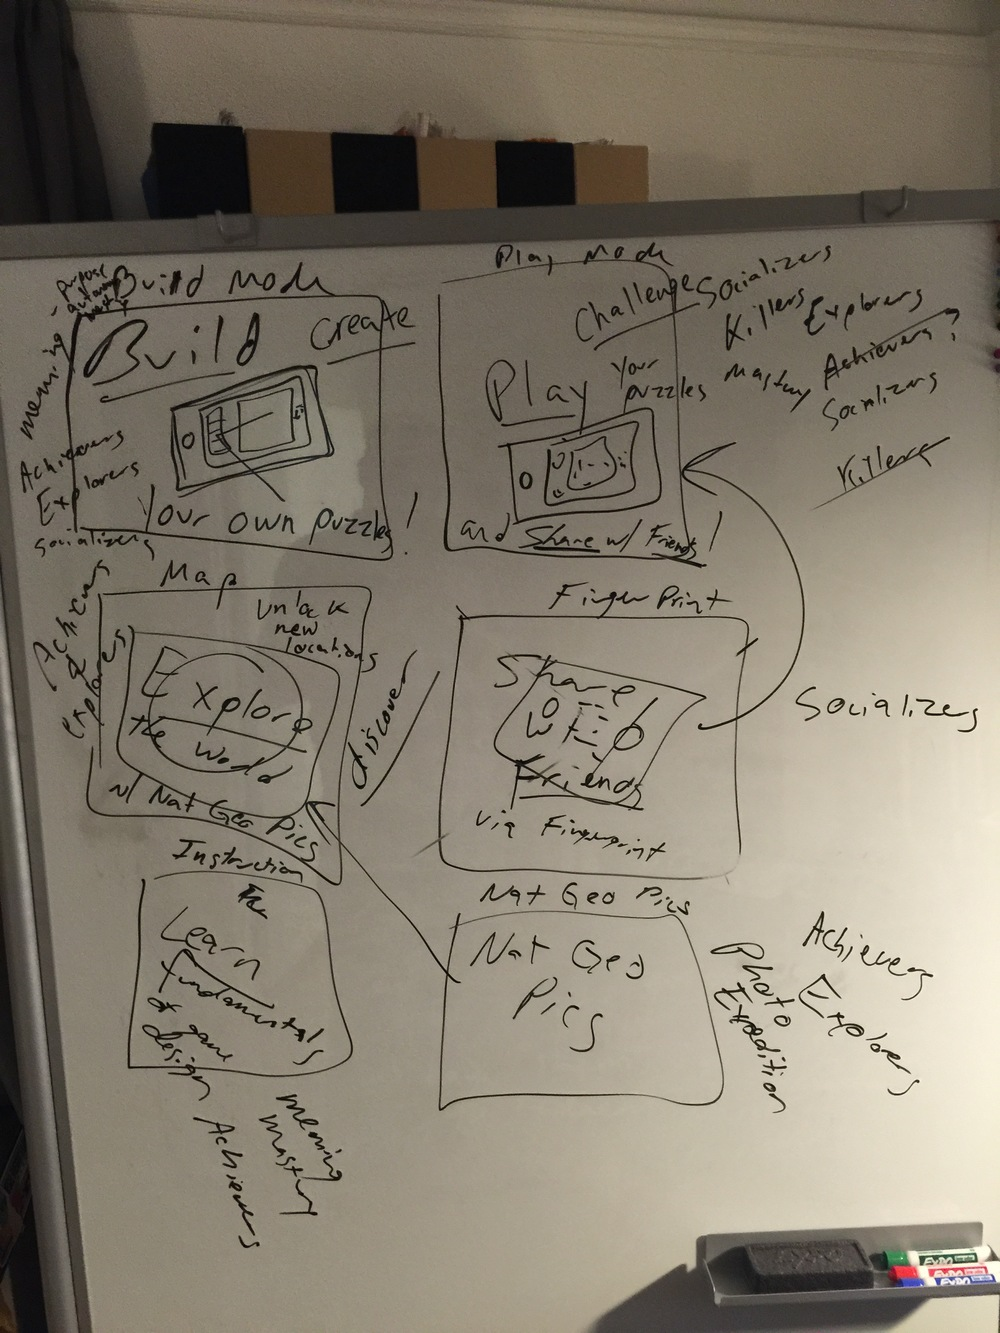 A whiteboard wireframe from an early brainstorming session